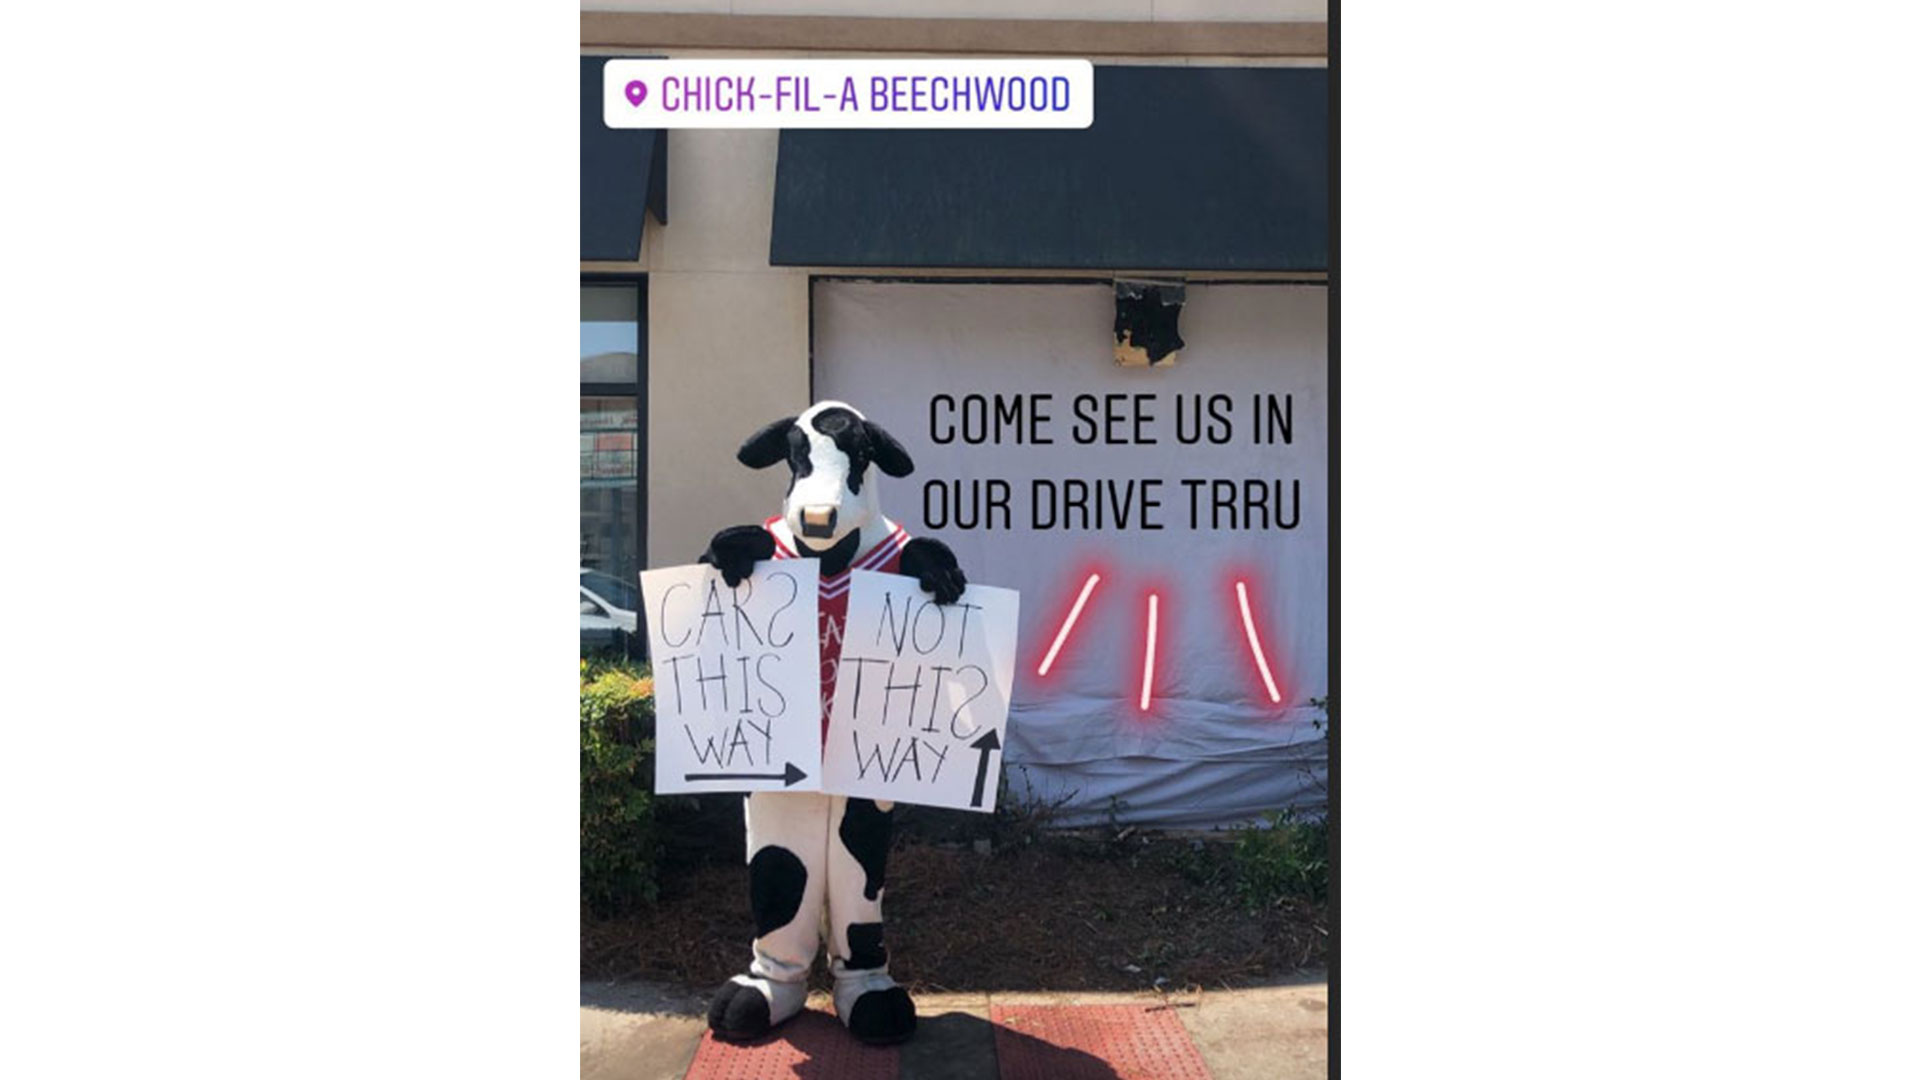 Chick fil A Beechwood Instagram